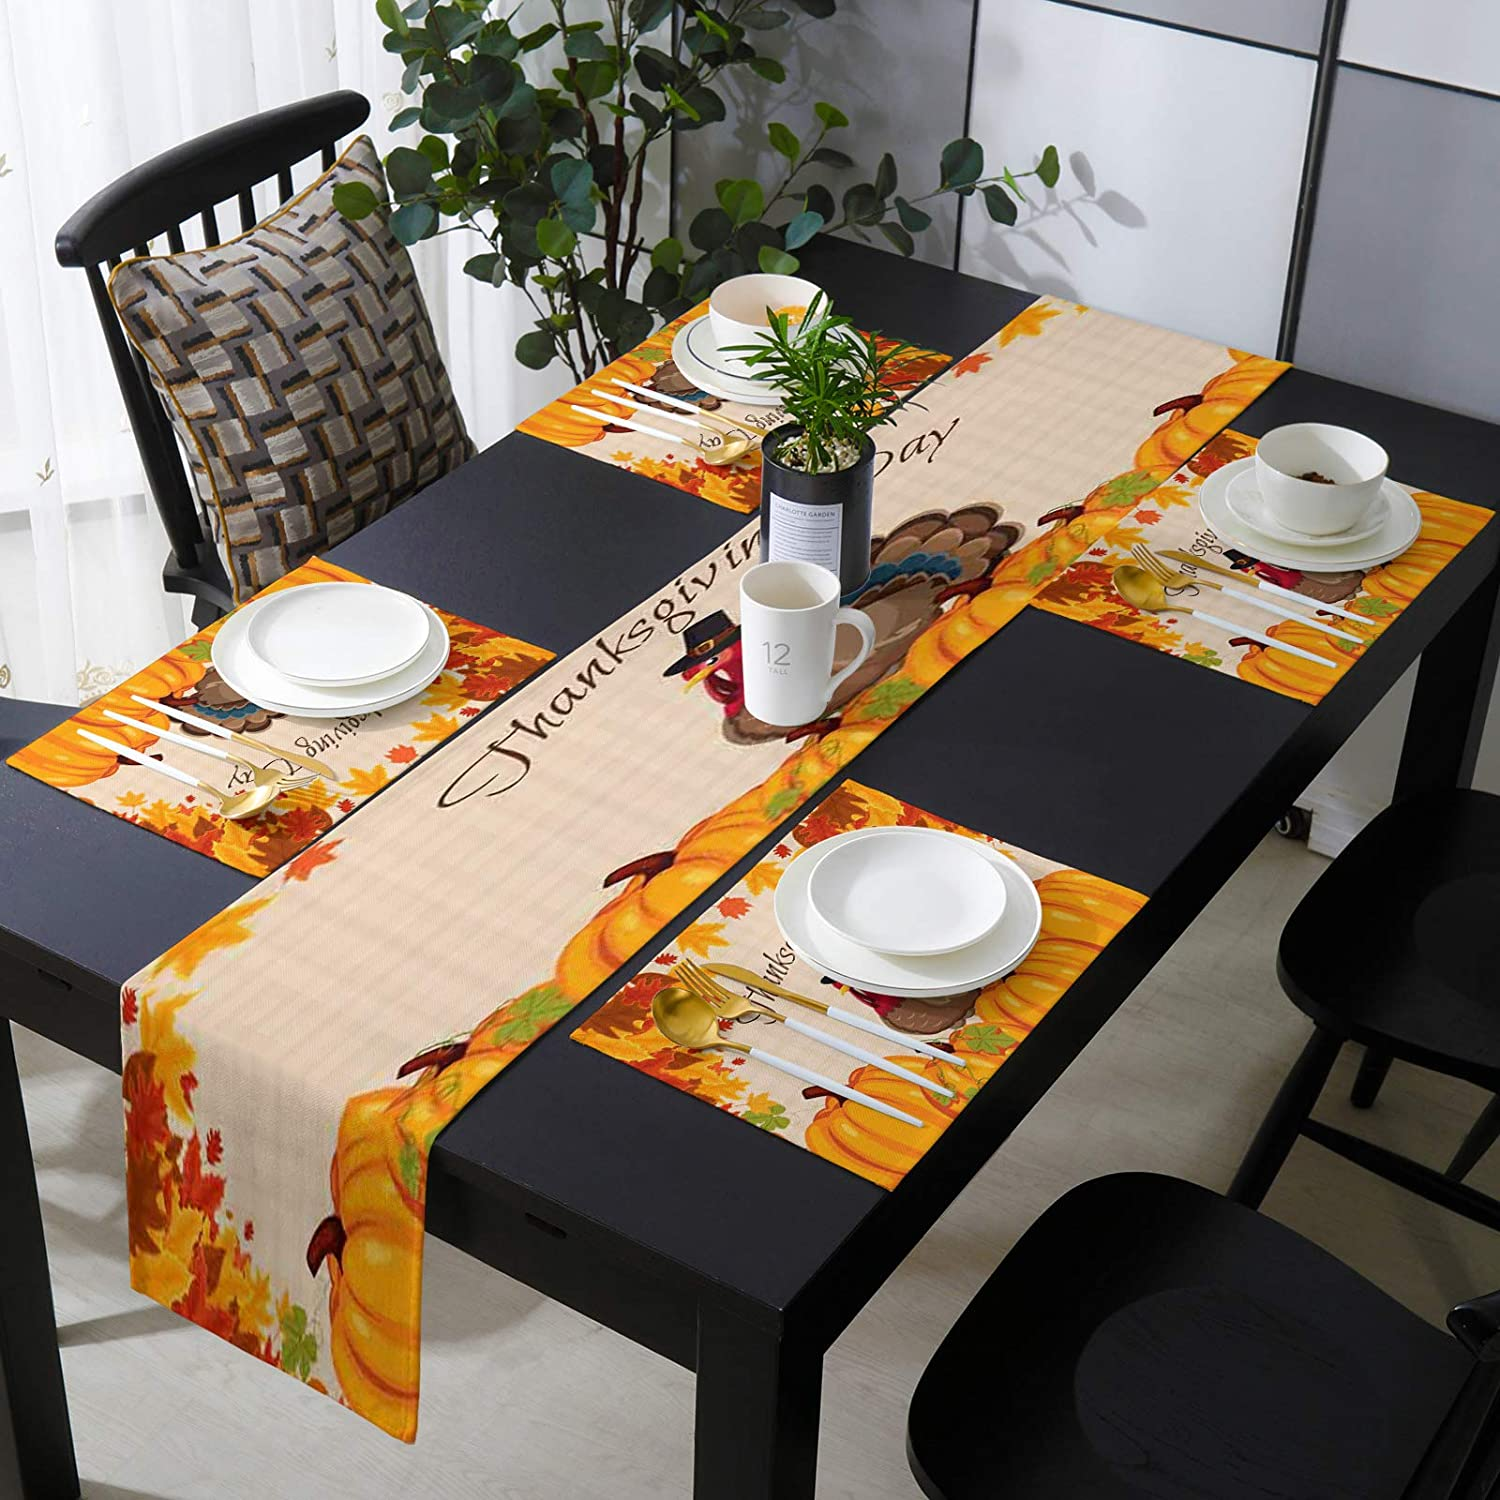 NEW before selling ☆ Kitchen Table Runner and Popular brand in the world Placemats 13x70inches Burlap Linen Farm